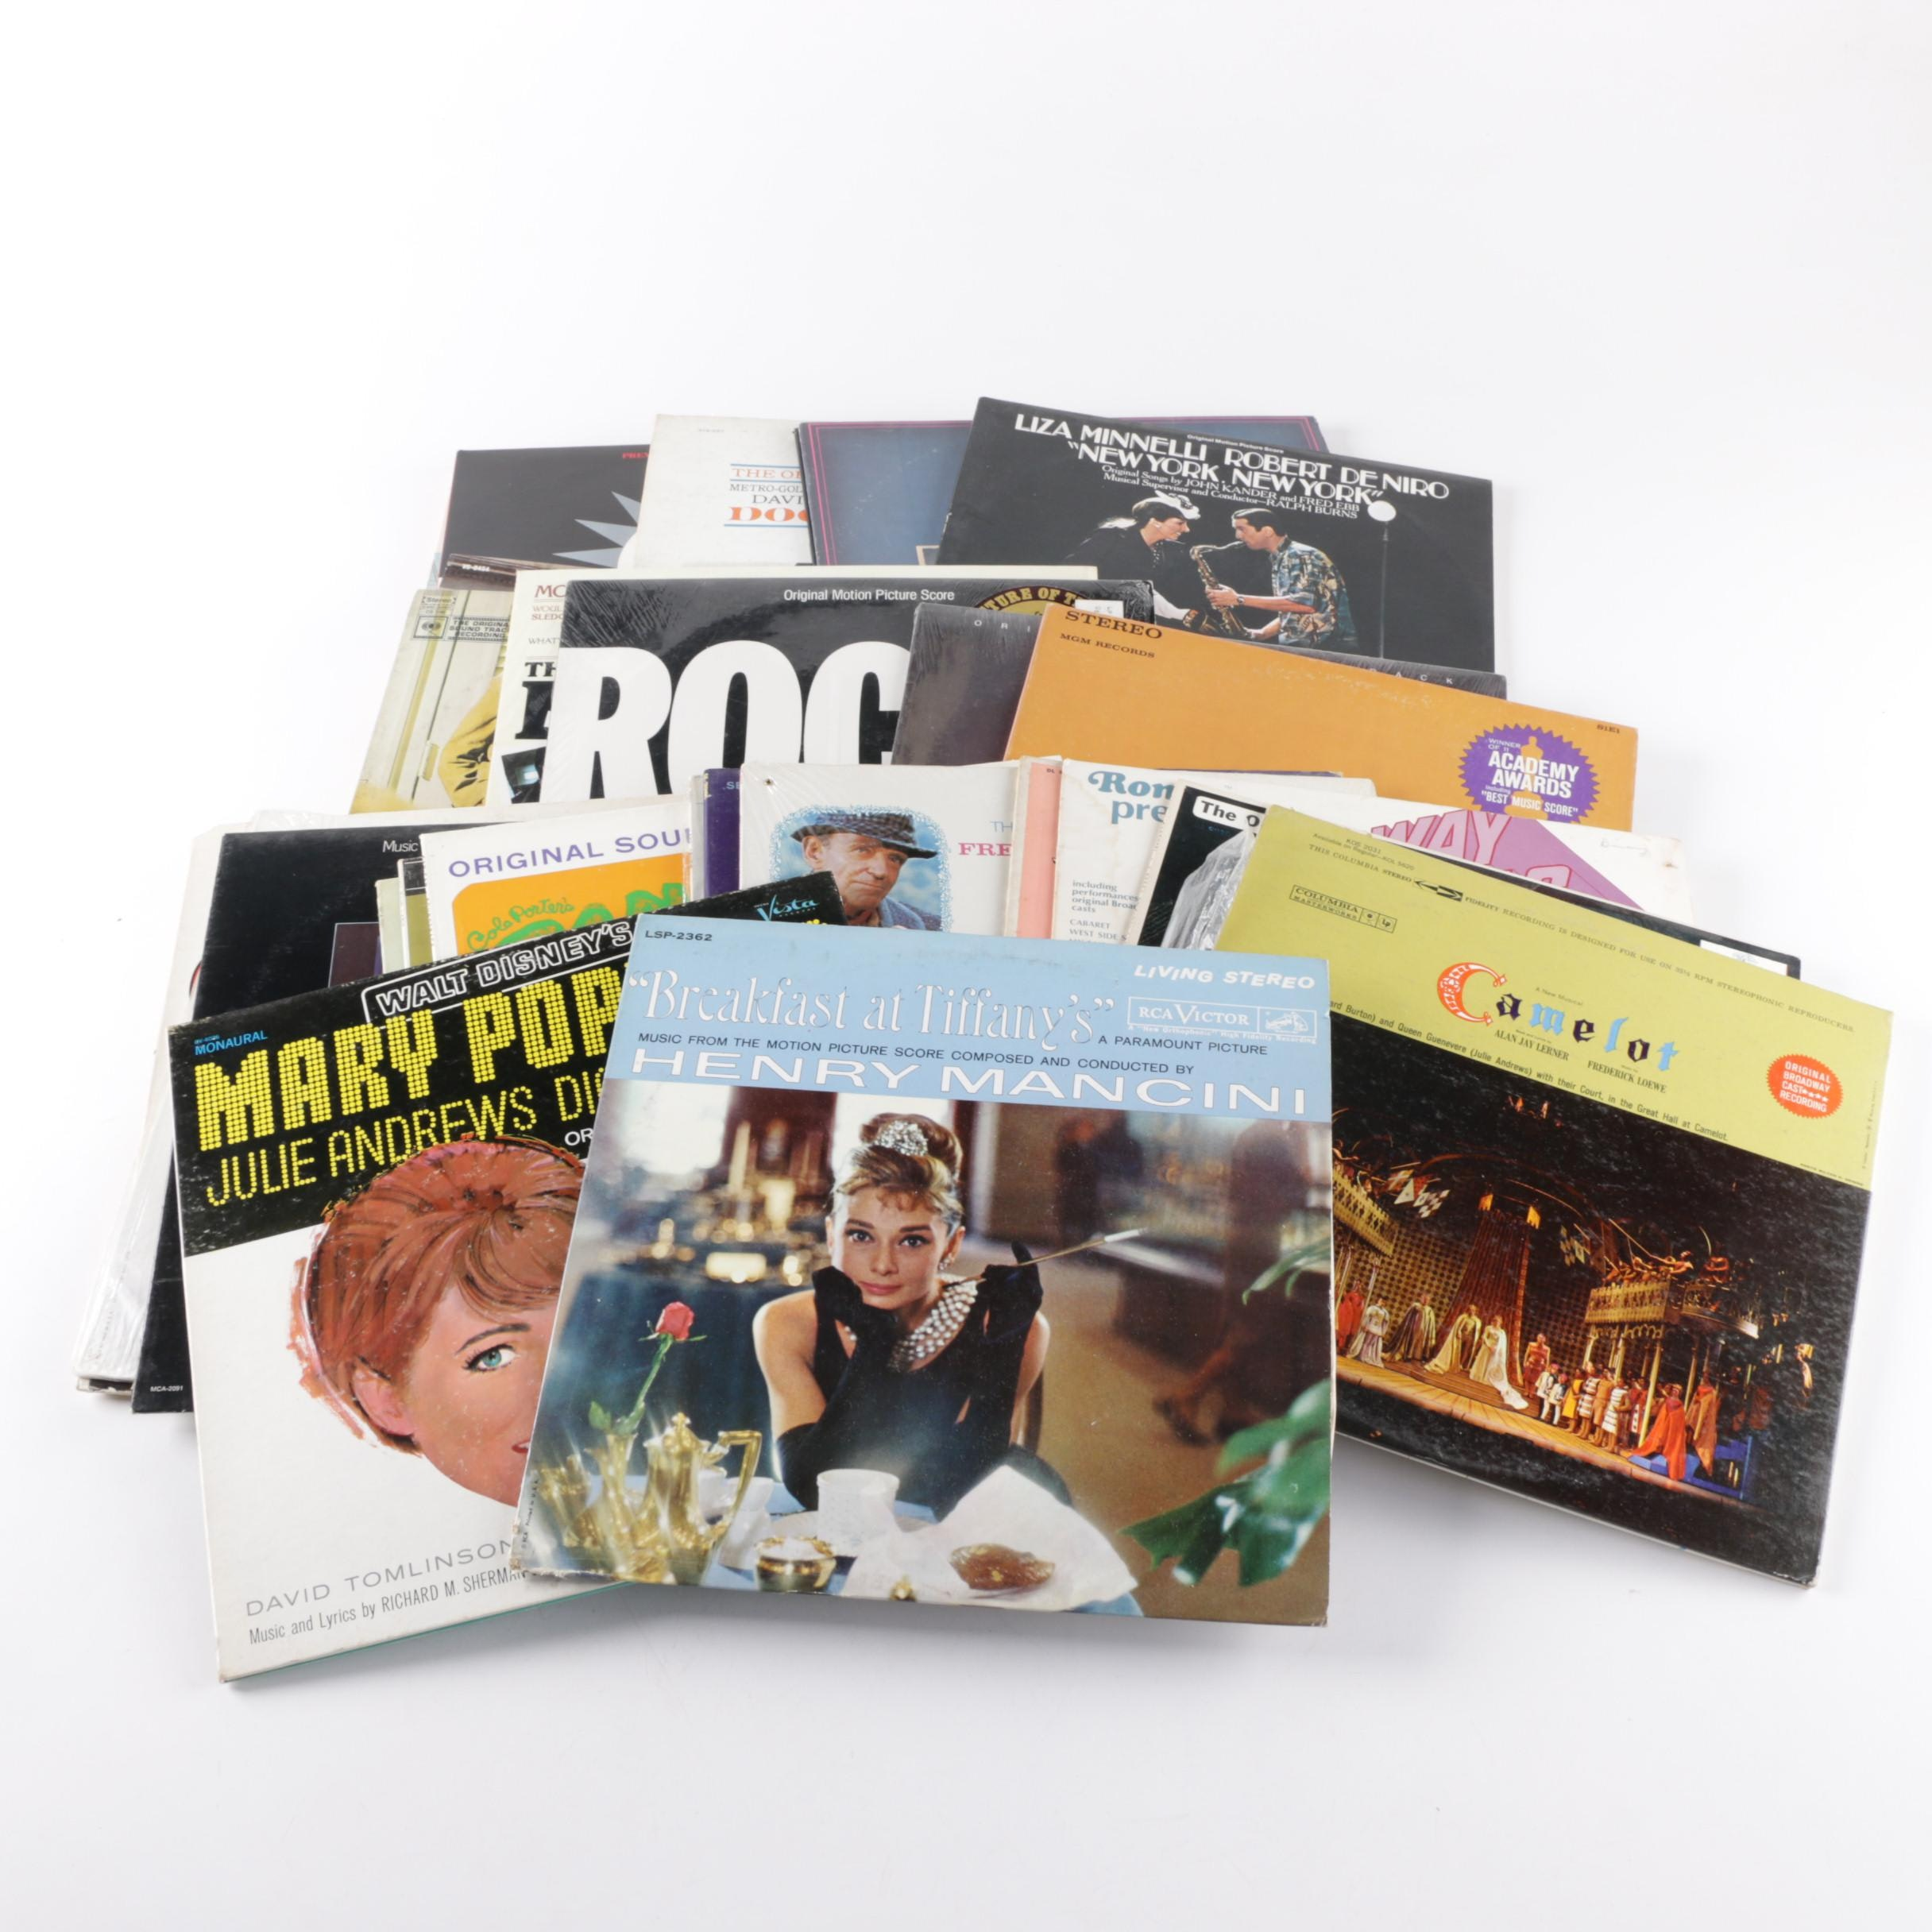 Rocky, Breakfast at Tiffany's, and Other Classic Soundtrack LPs